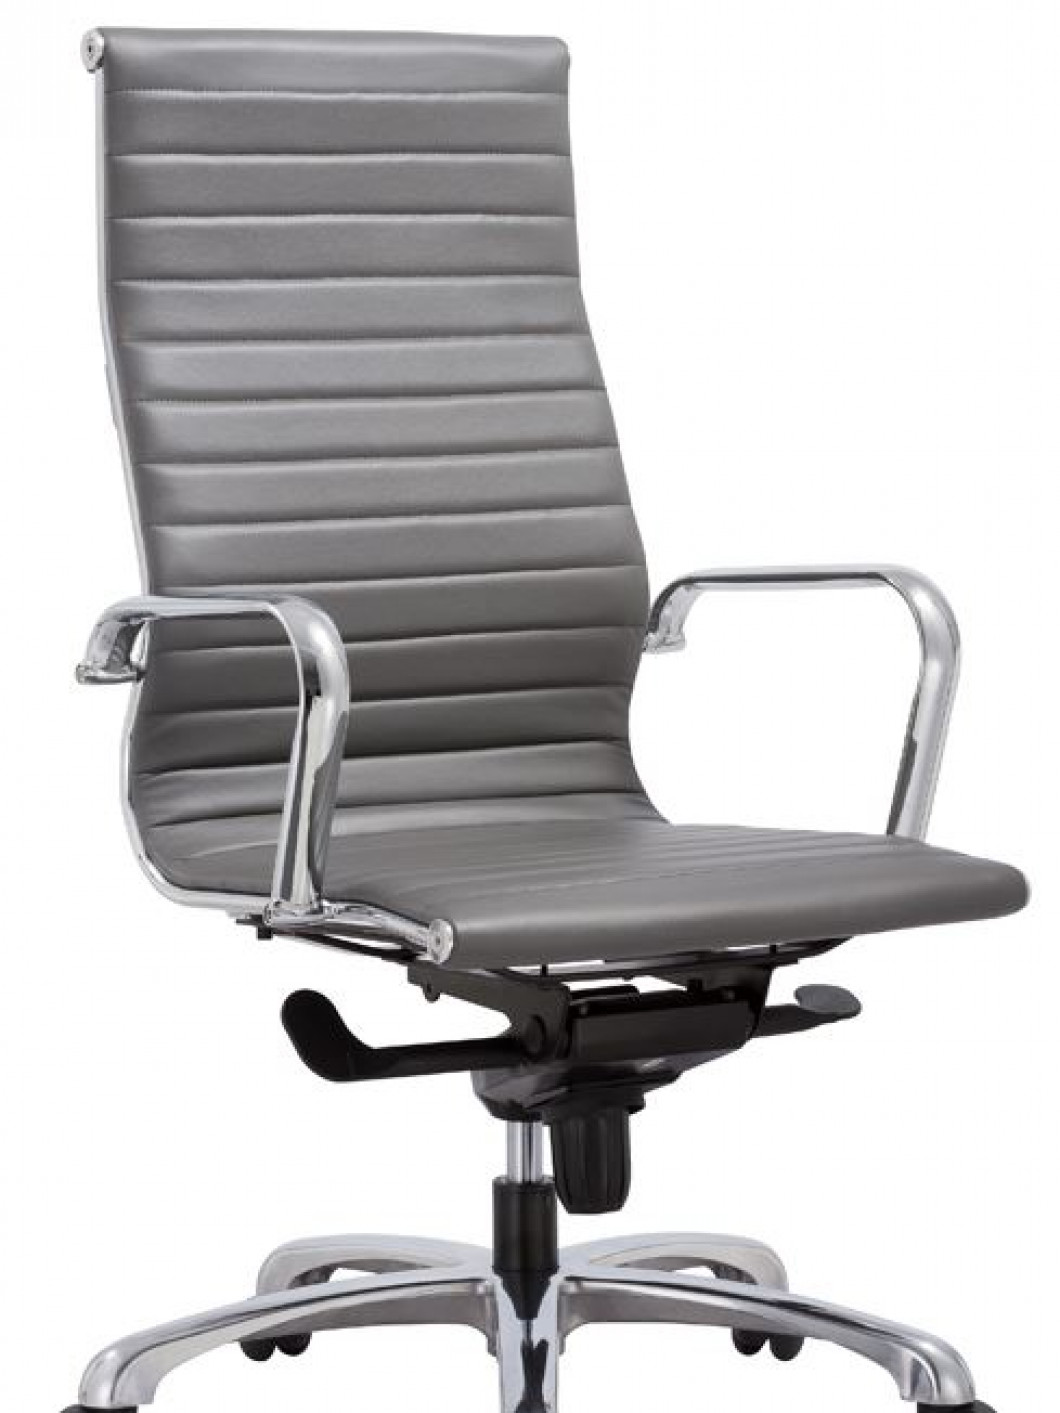 Nova High Back Desk Chair Grey Leather